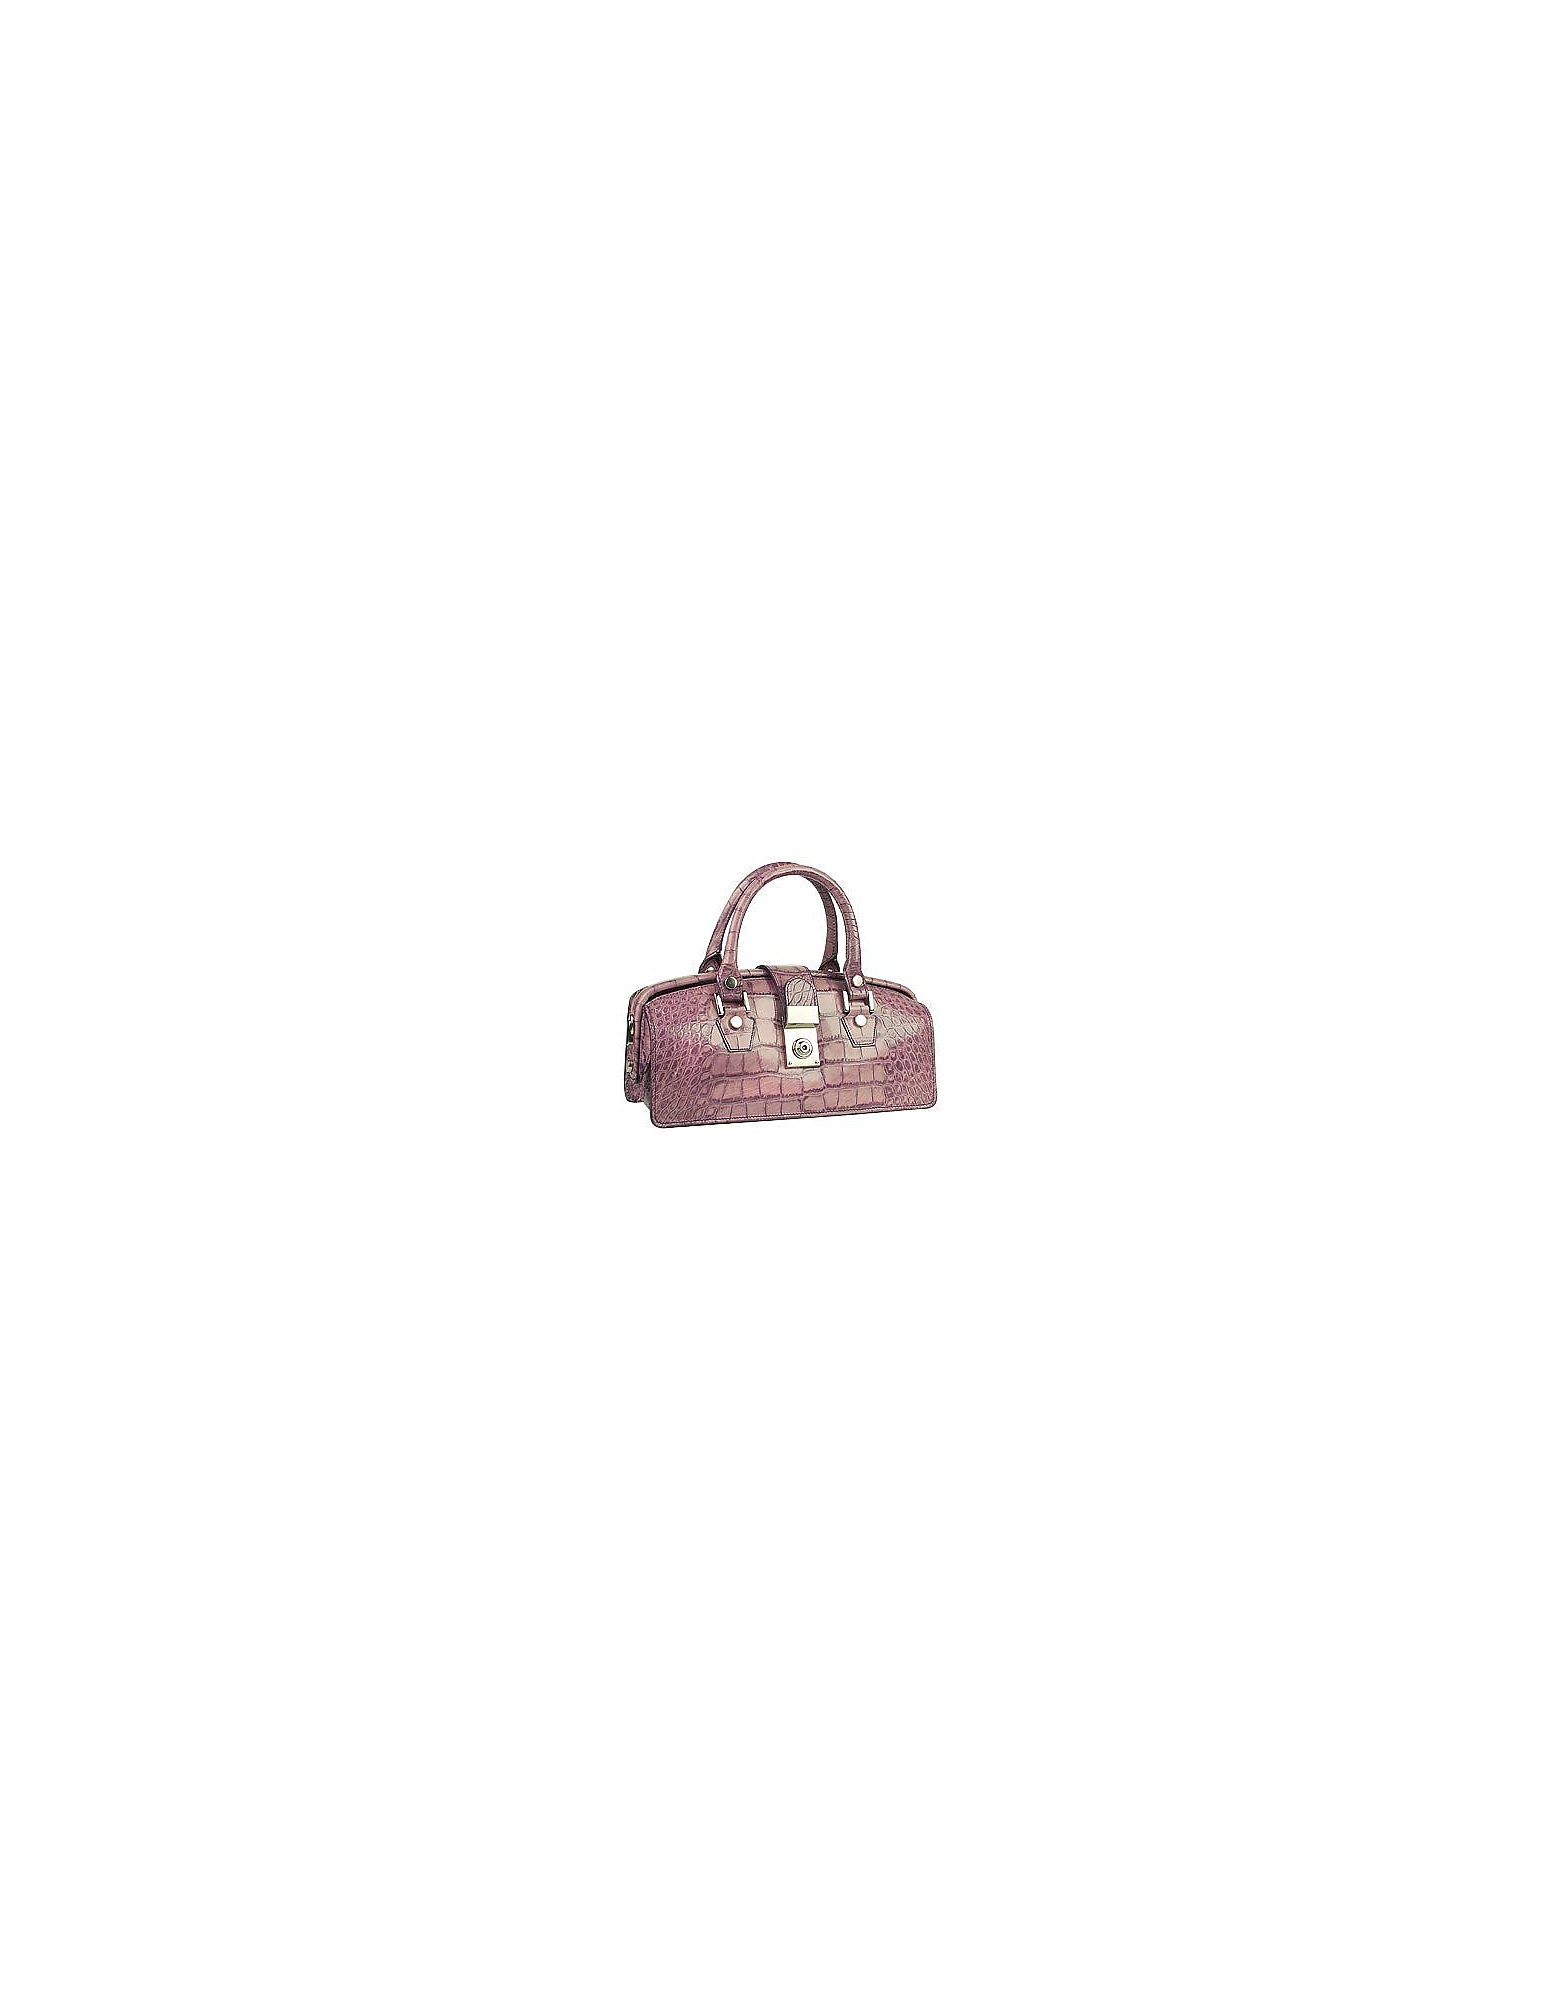 L.A.P.A. Handbags, Lilac Croco-embossed Mini Doctor Style Bag